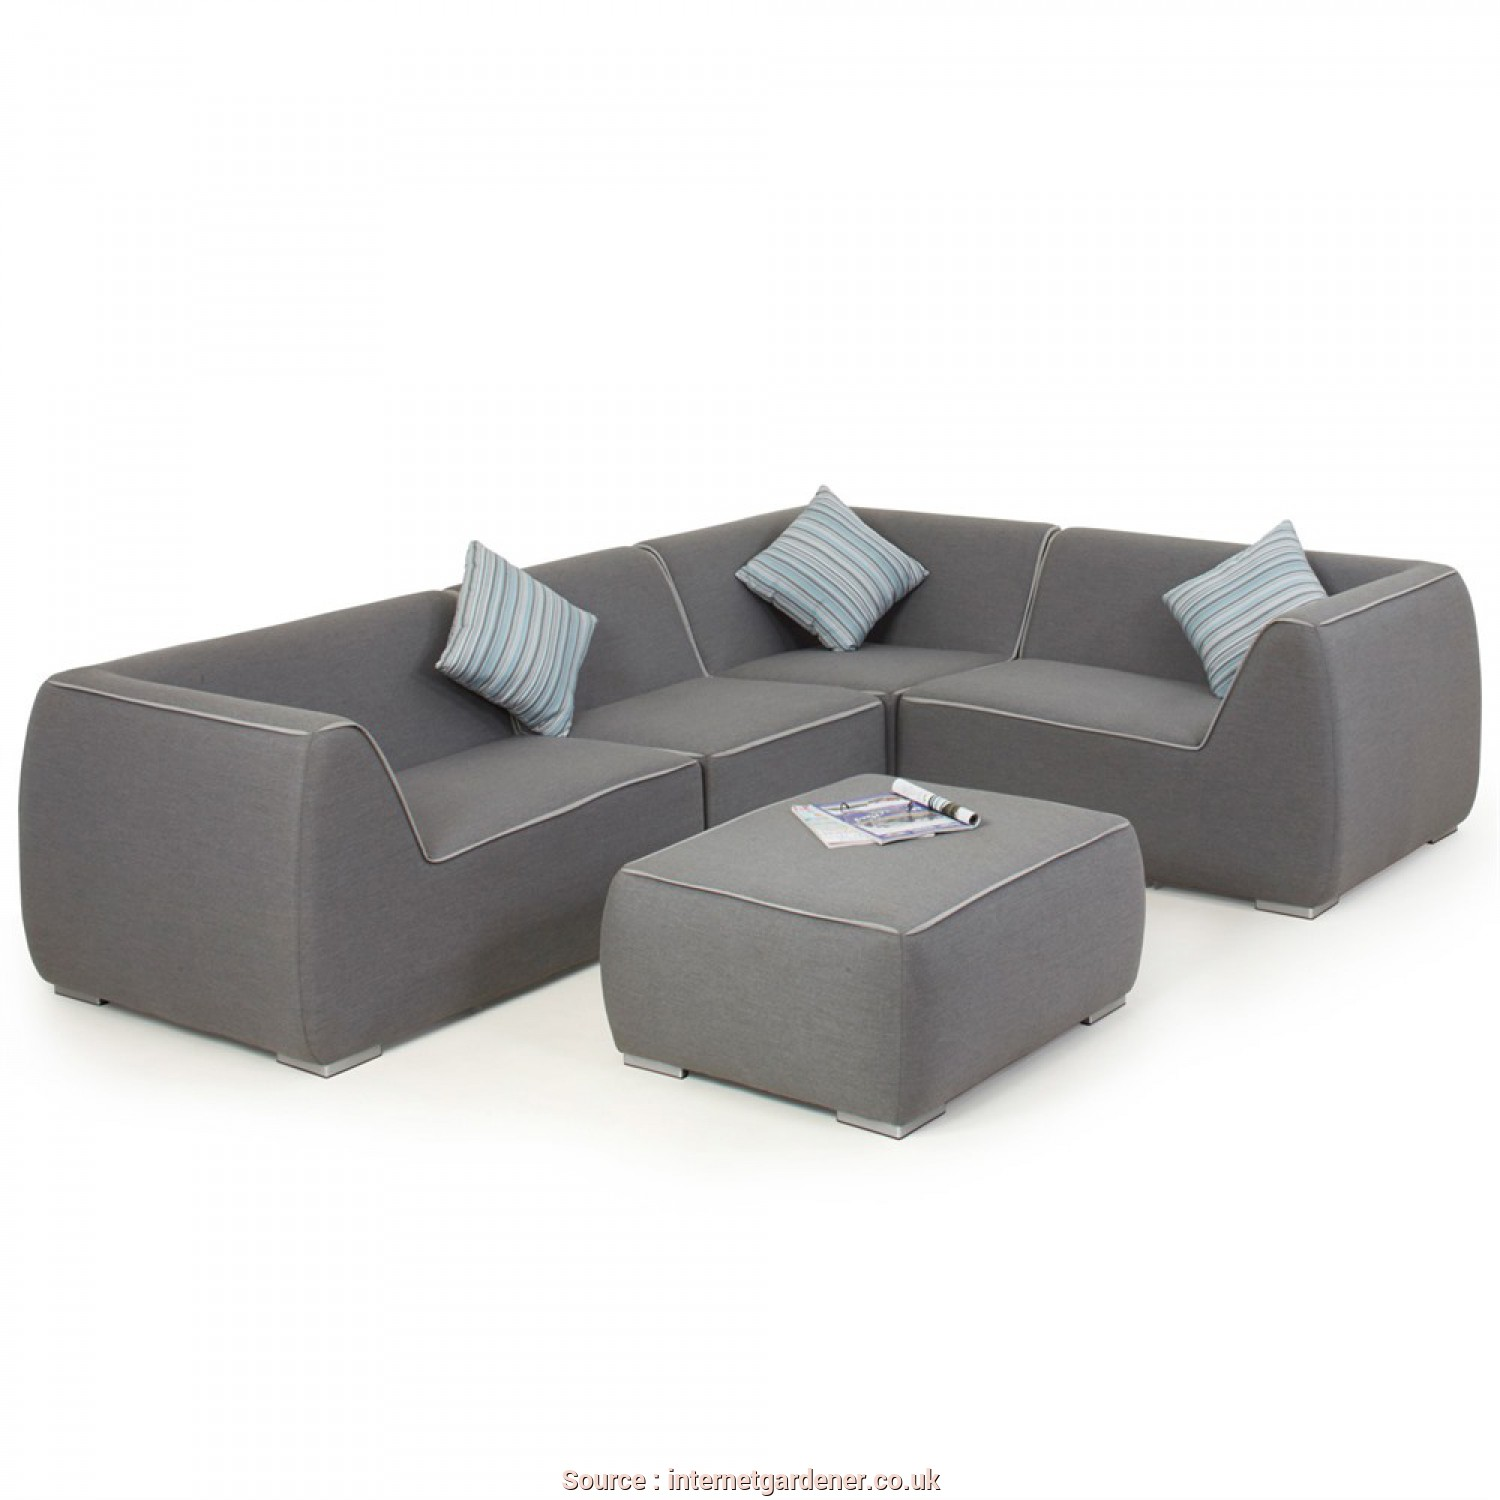 Maze Rattan Divano, Rustico Maze Divano Nadi Small, Weather Fabric Corner Sofa, With Ottoman